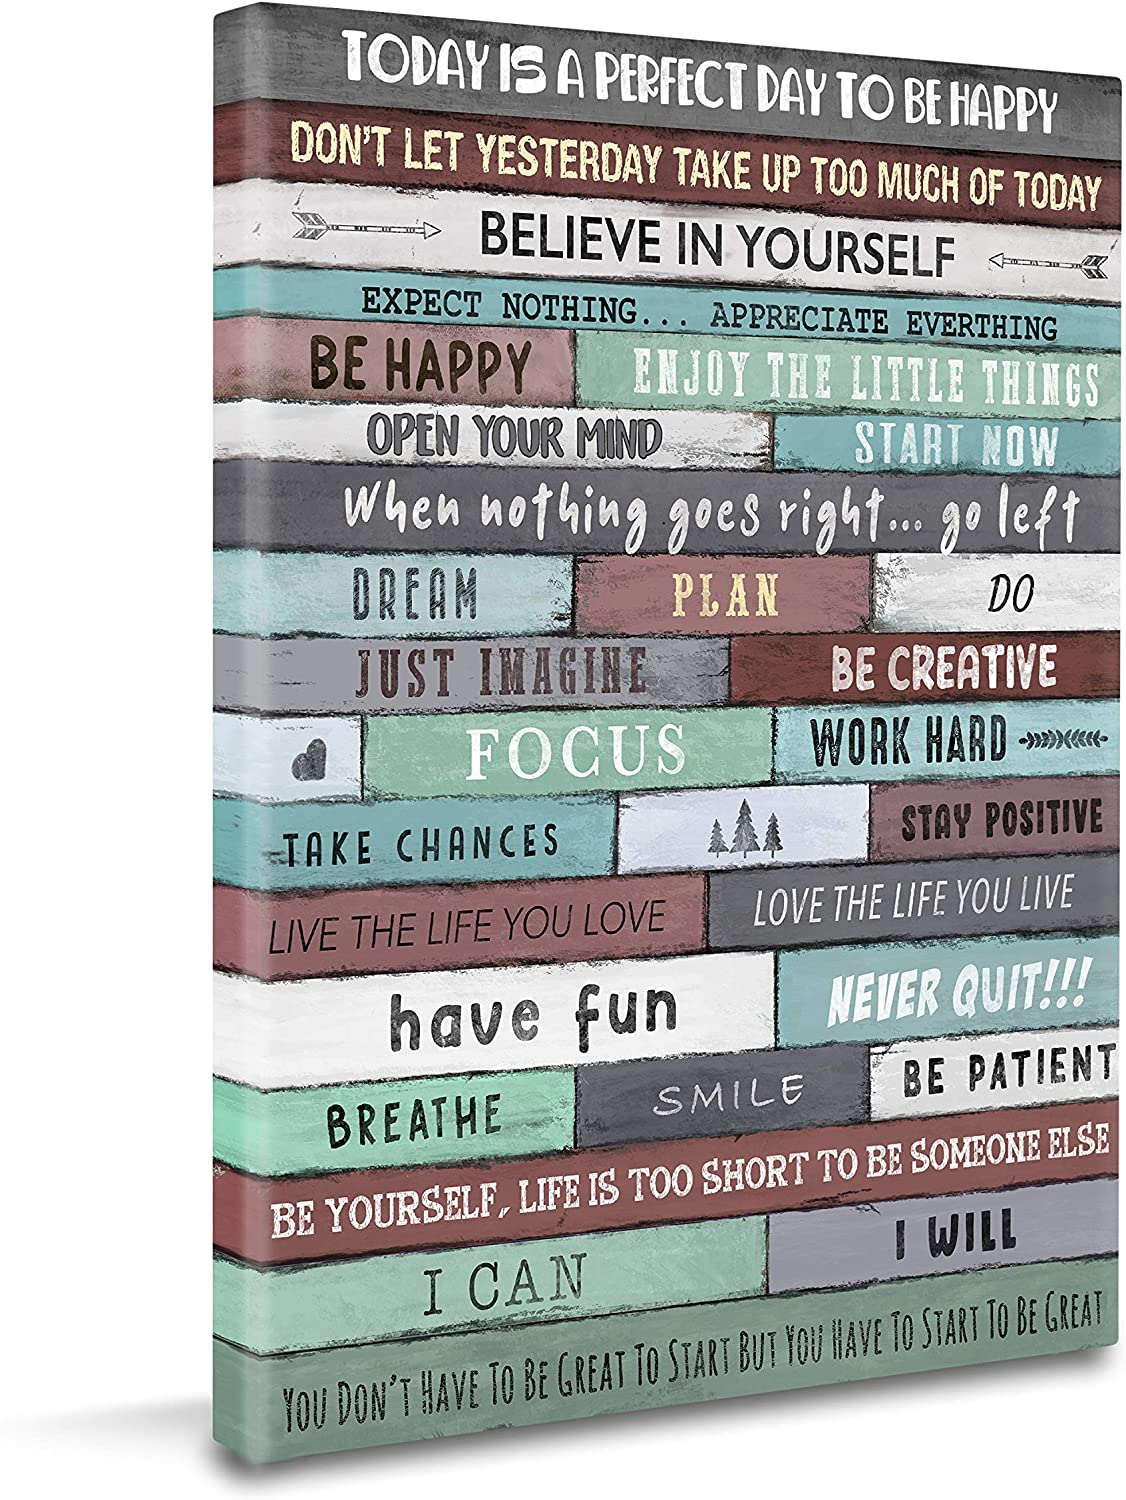 "Istrion Inspirational Wall Art Framed Canvas for Bedroom Bathroom Office Gym Kitchen Living Room Decor Motivational Quote Phrases Inspiring Wall Poster Farmhouse Rustic Vintage Picture Life Quotes Teal Color Schema Size 16""x12""x1"""